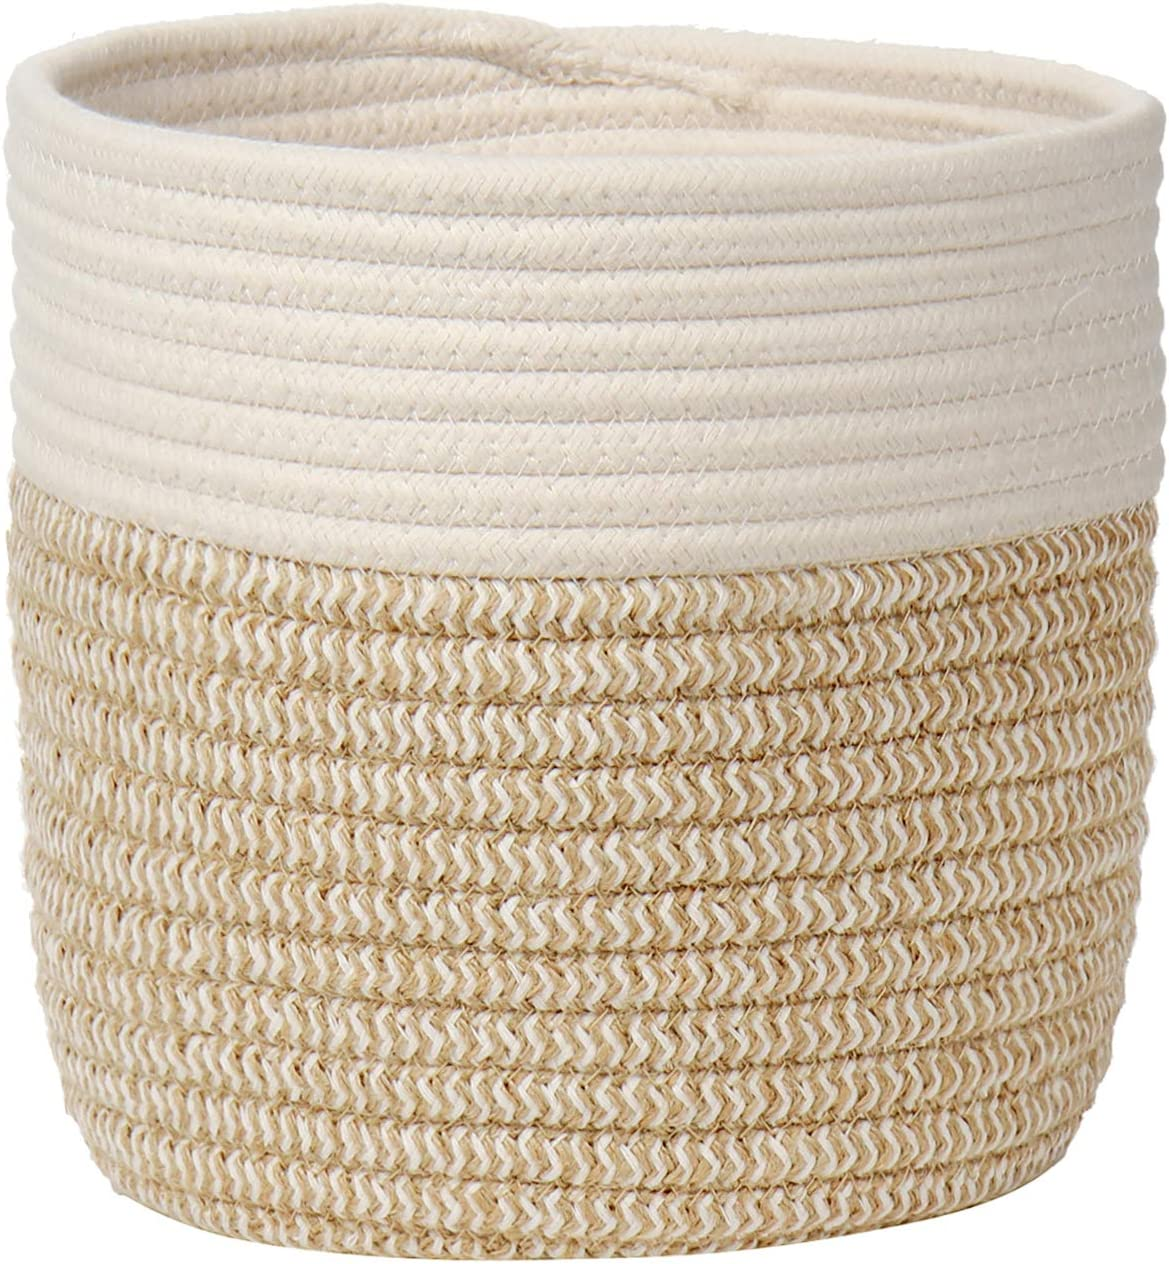 Woven Cotton Rope Plant Basket for Flowers Pot Jute Price reduction Small Plante New sales